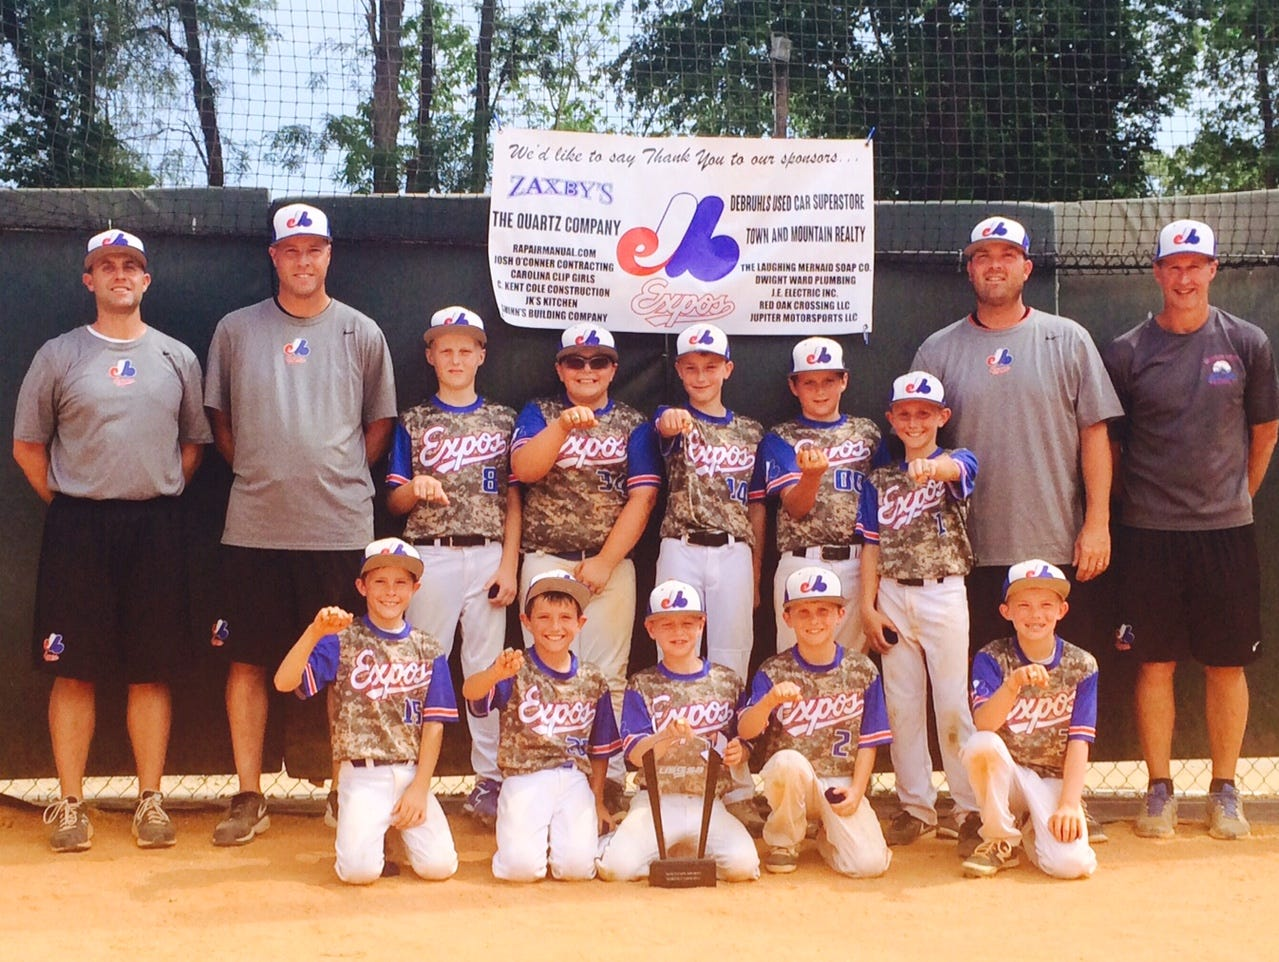 The Mountain Expos 10 and under baseball team won the Taco Bell Mountain Frenzy tournament held over the weekend at Jackson Park in Hendersonville.